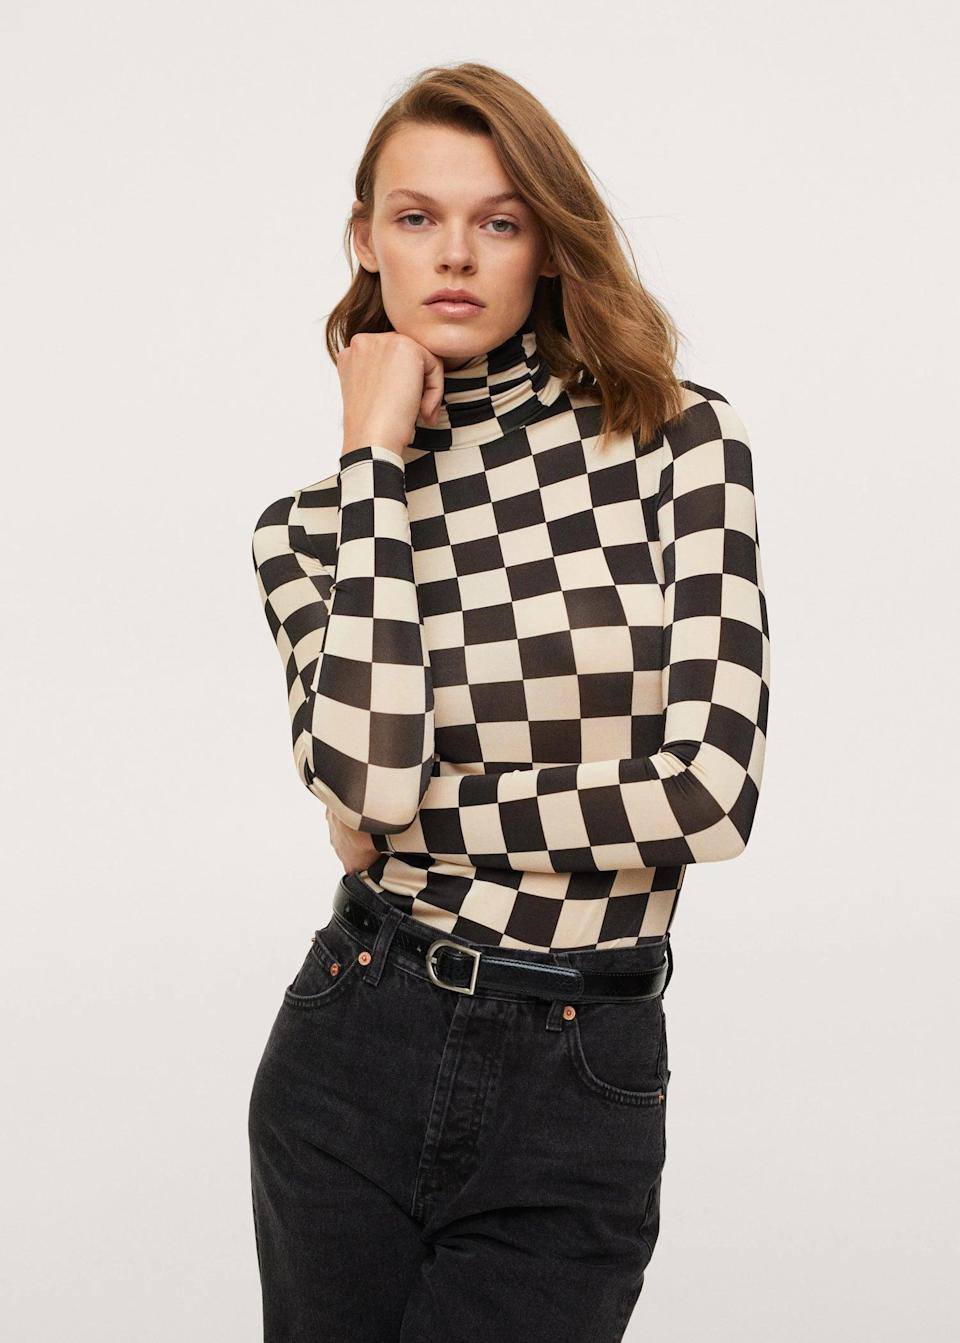 <p>This <span>Turtleneck T-Shirt</span> ($50) is easily the coolest one we've seen today. The pattern makes it playful, while the silhouette makes it an ideal choice for fall.</p>